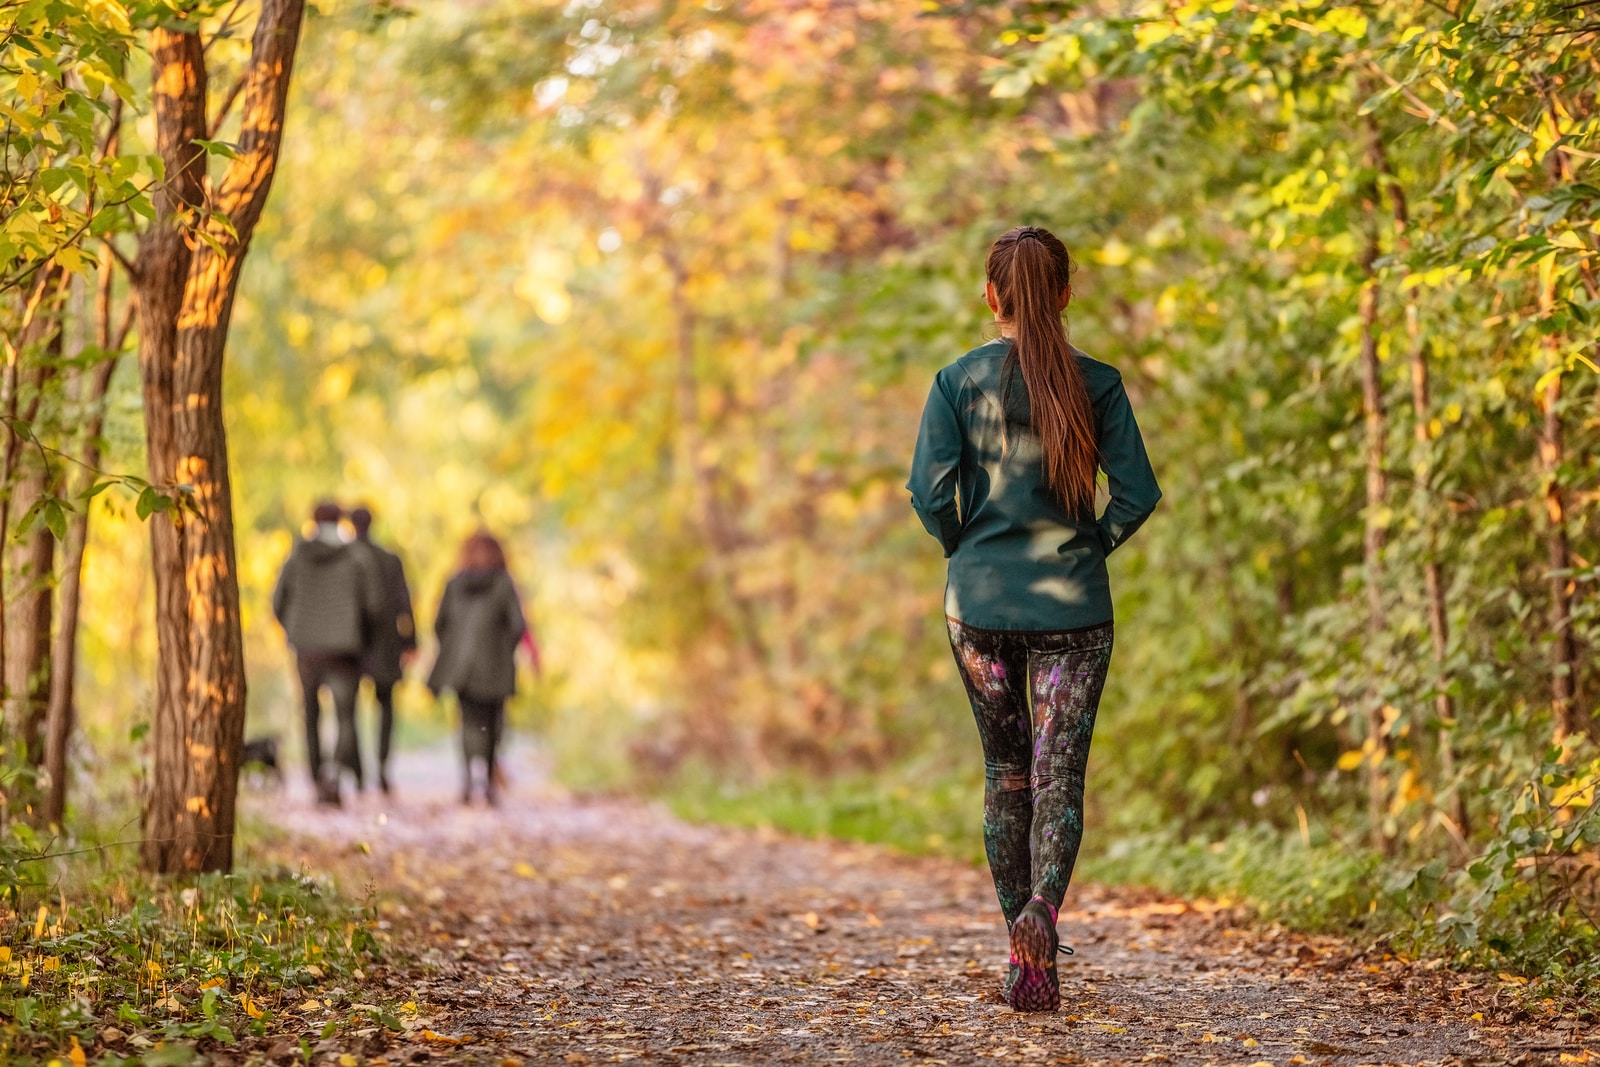 Walk or try yoga to beat bloat on Thanksgiving